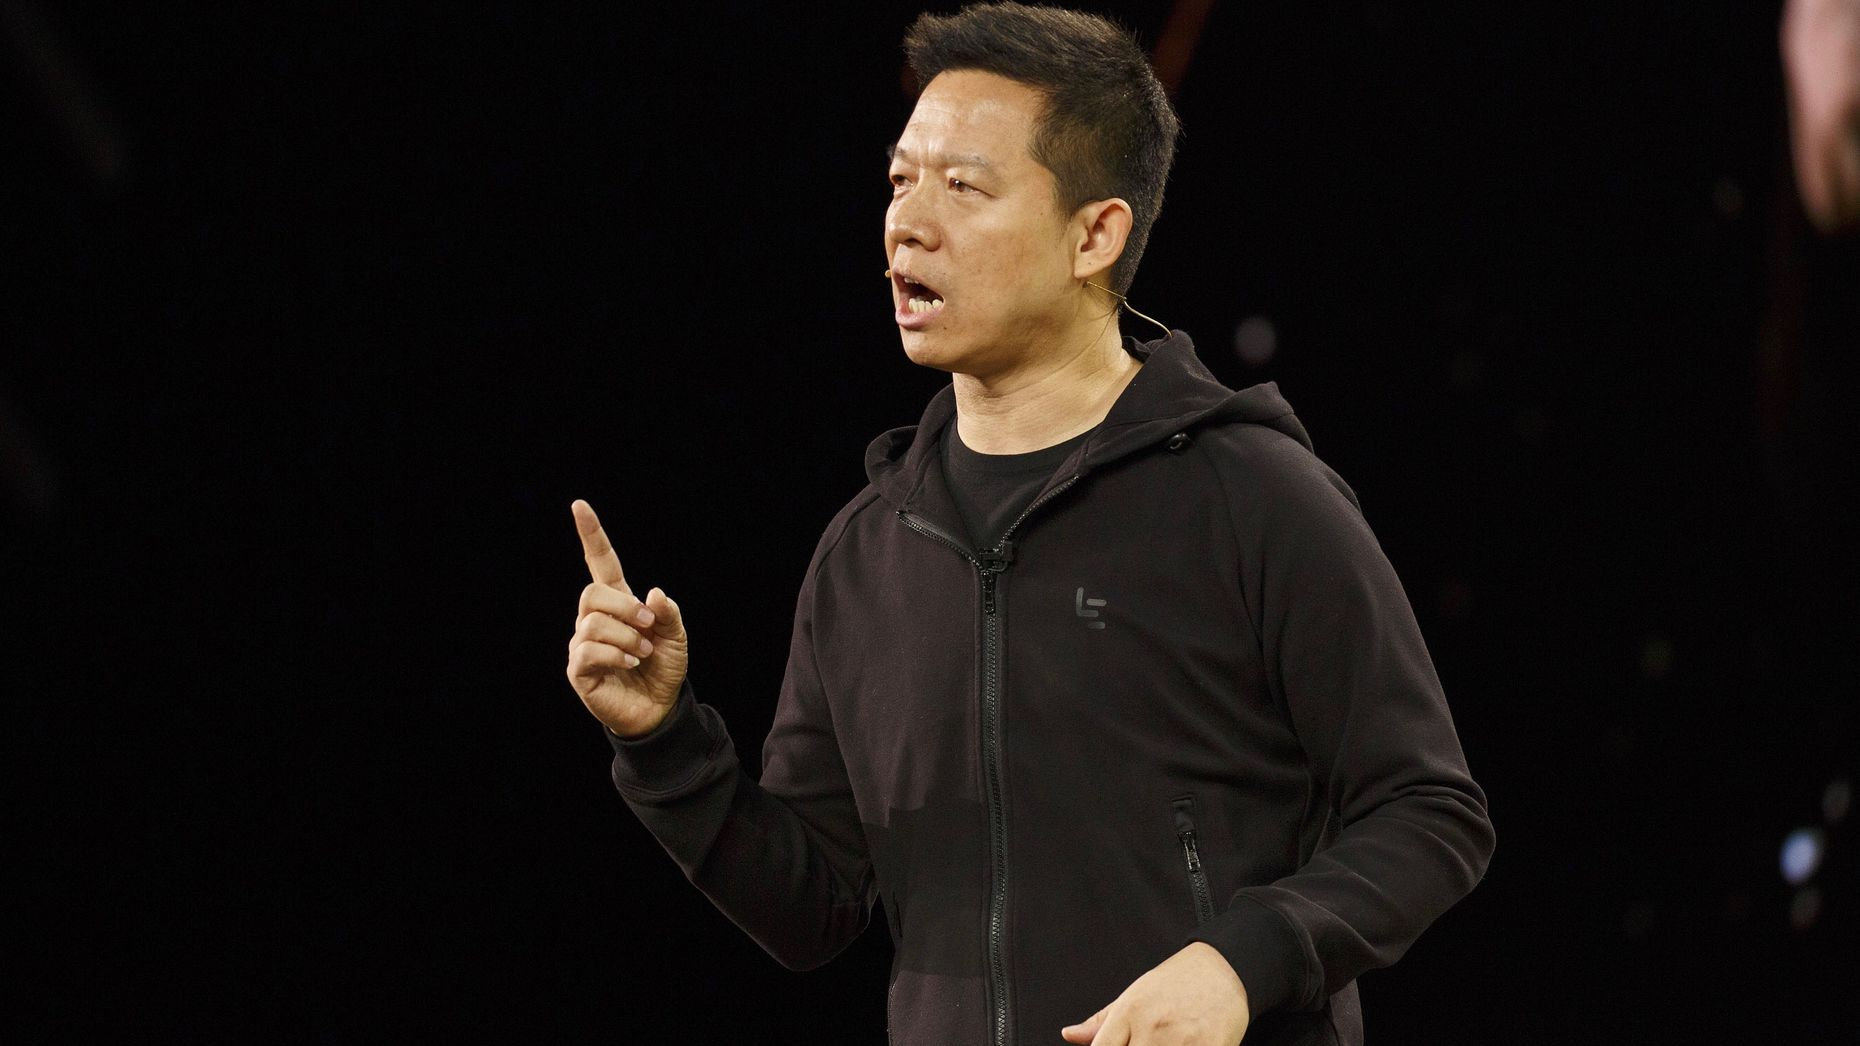 LeEco co-founder Jia Yueting. Photo by Bloomberg.